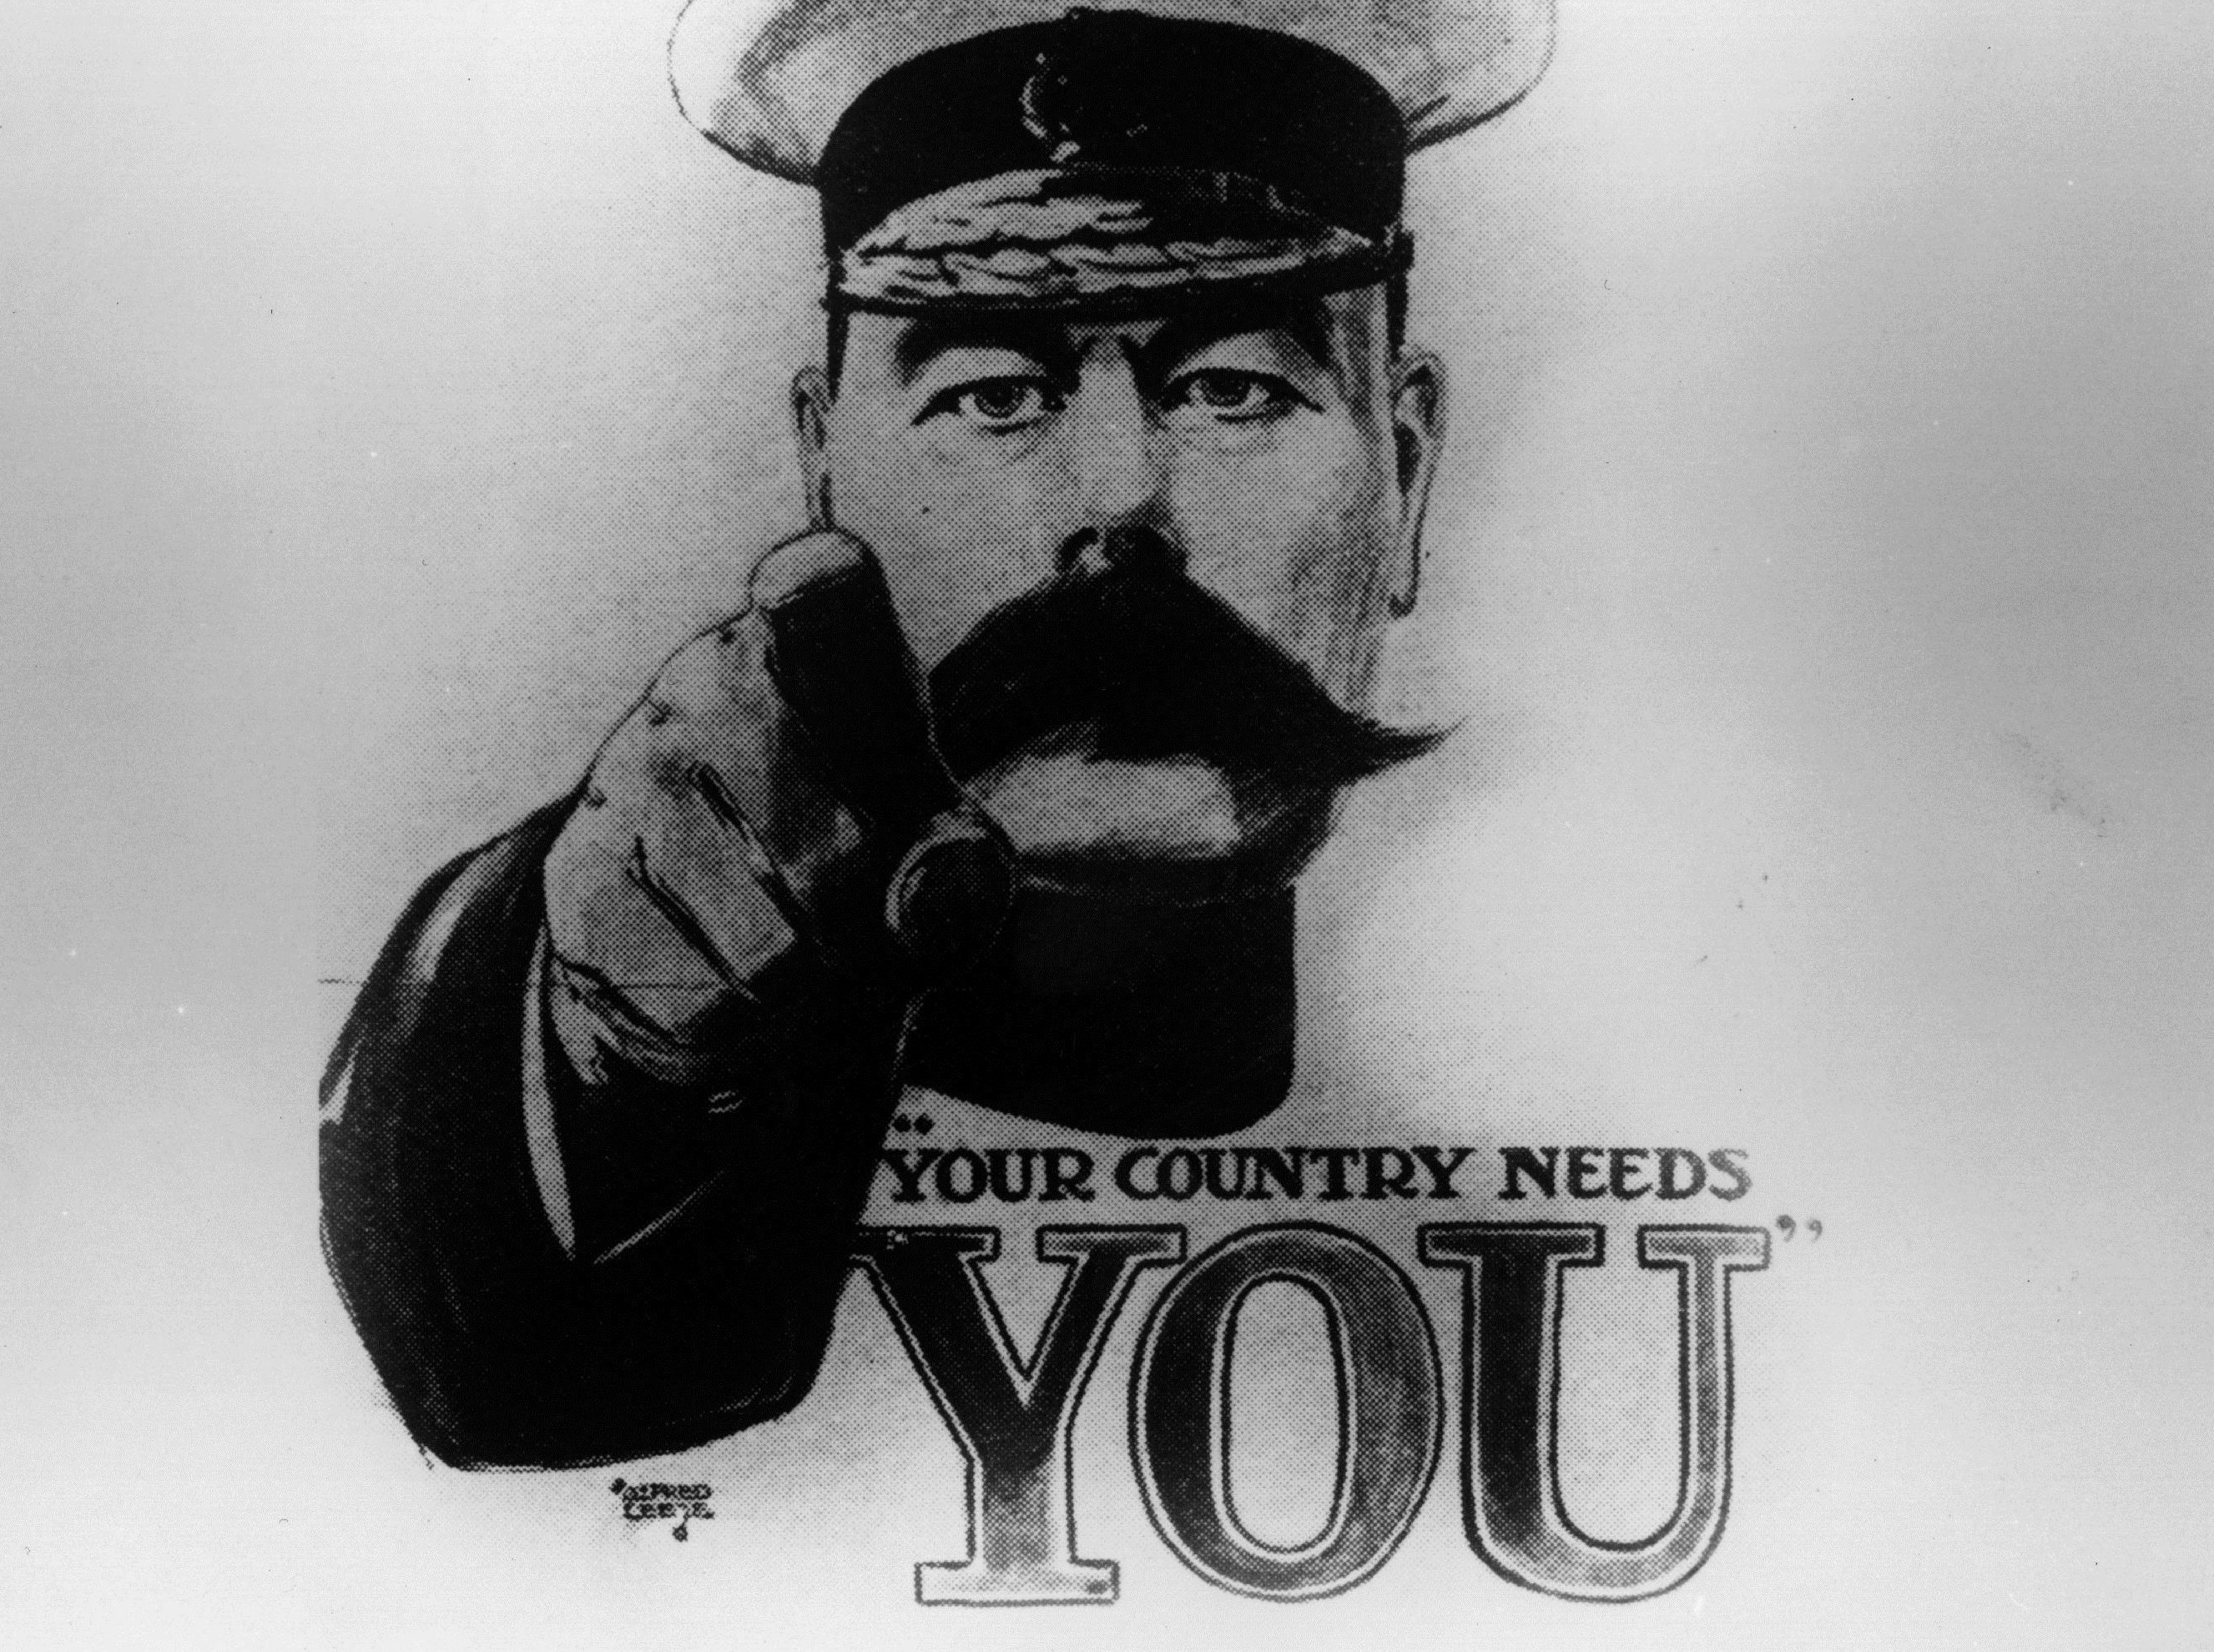 The famous Lord Kitchener poster